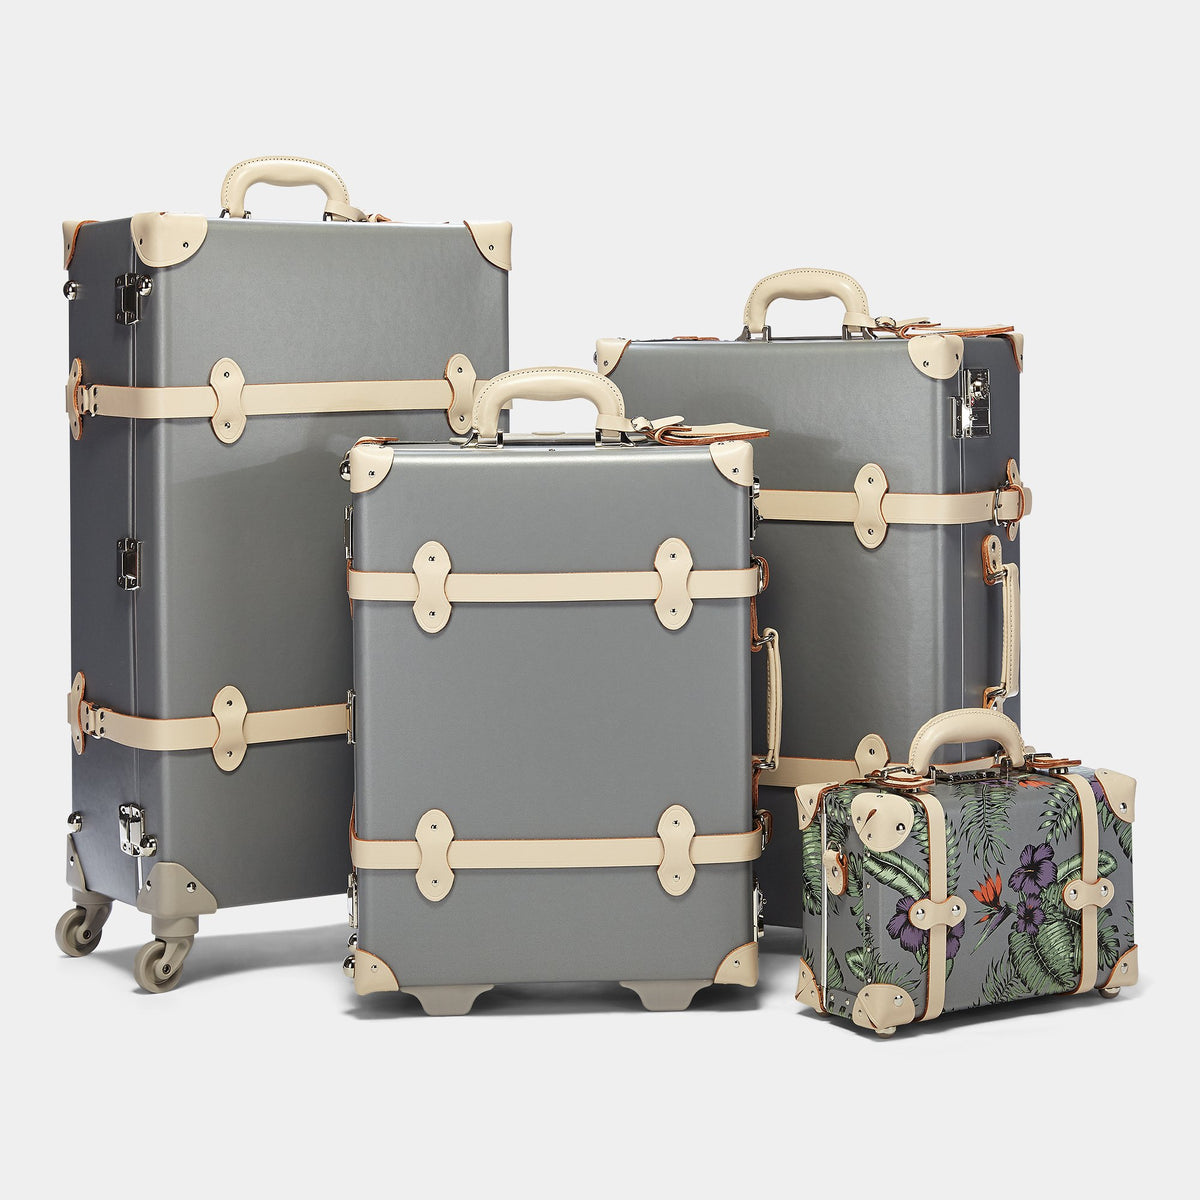 The Botanist Spinner in Grey - Vintage-Inspired Suitcase - Alongside matching cases from the Botanist Grey collection